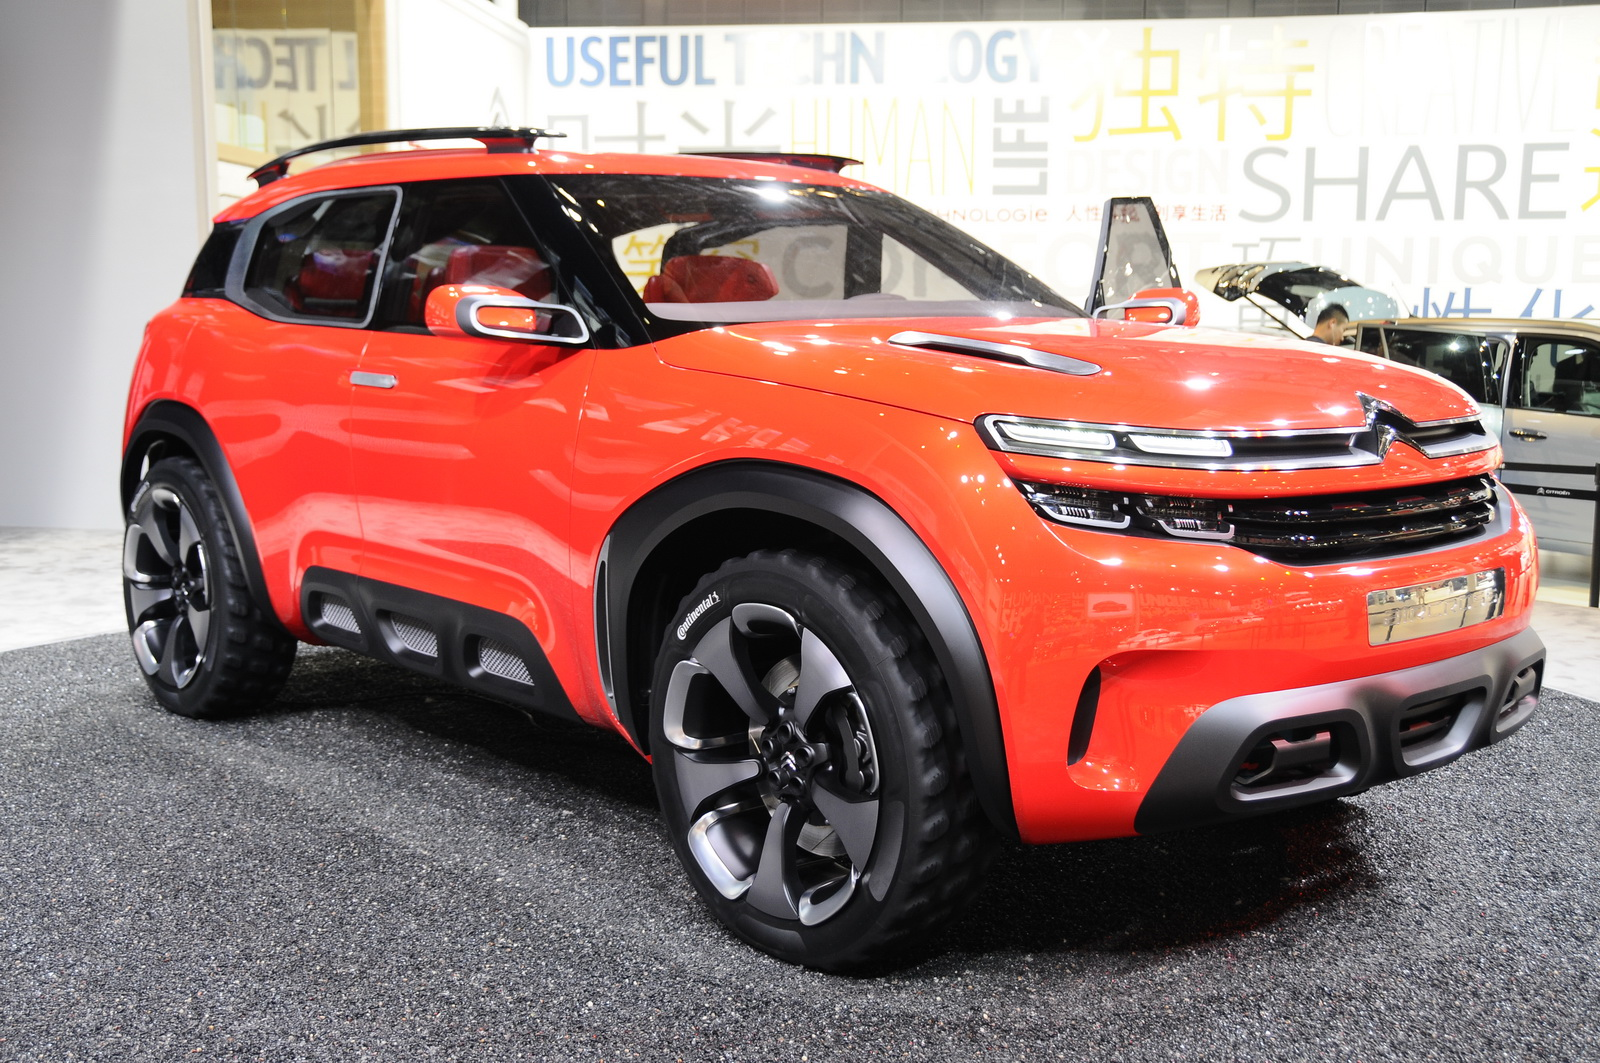 citroen s funky aircross concept is a cactus on steroids carscoops. Black Bedroom Furniture Sets. Home Design Ideas